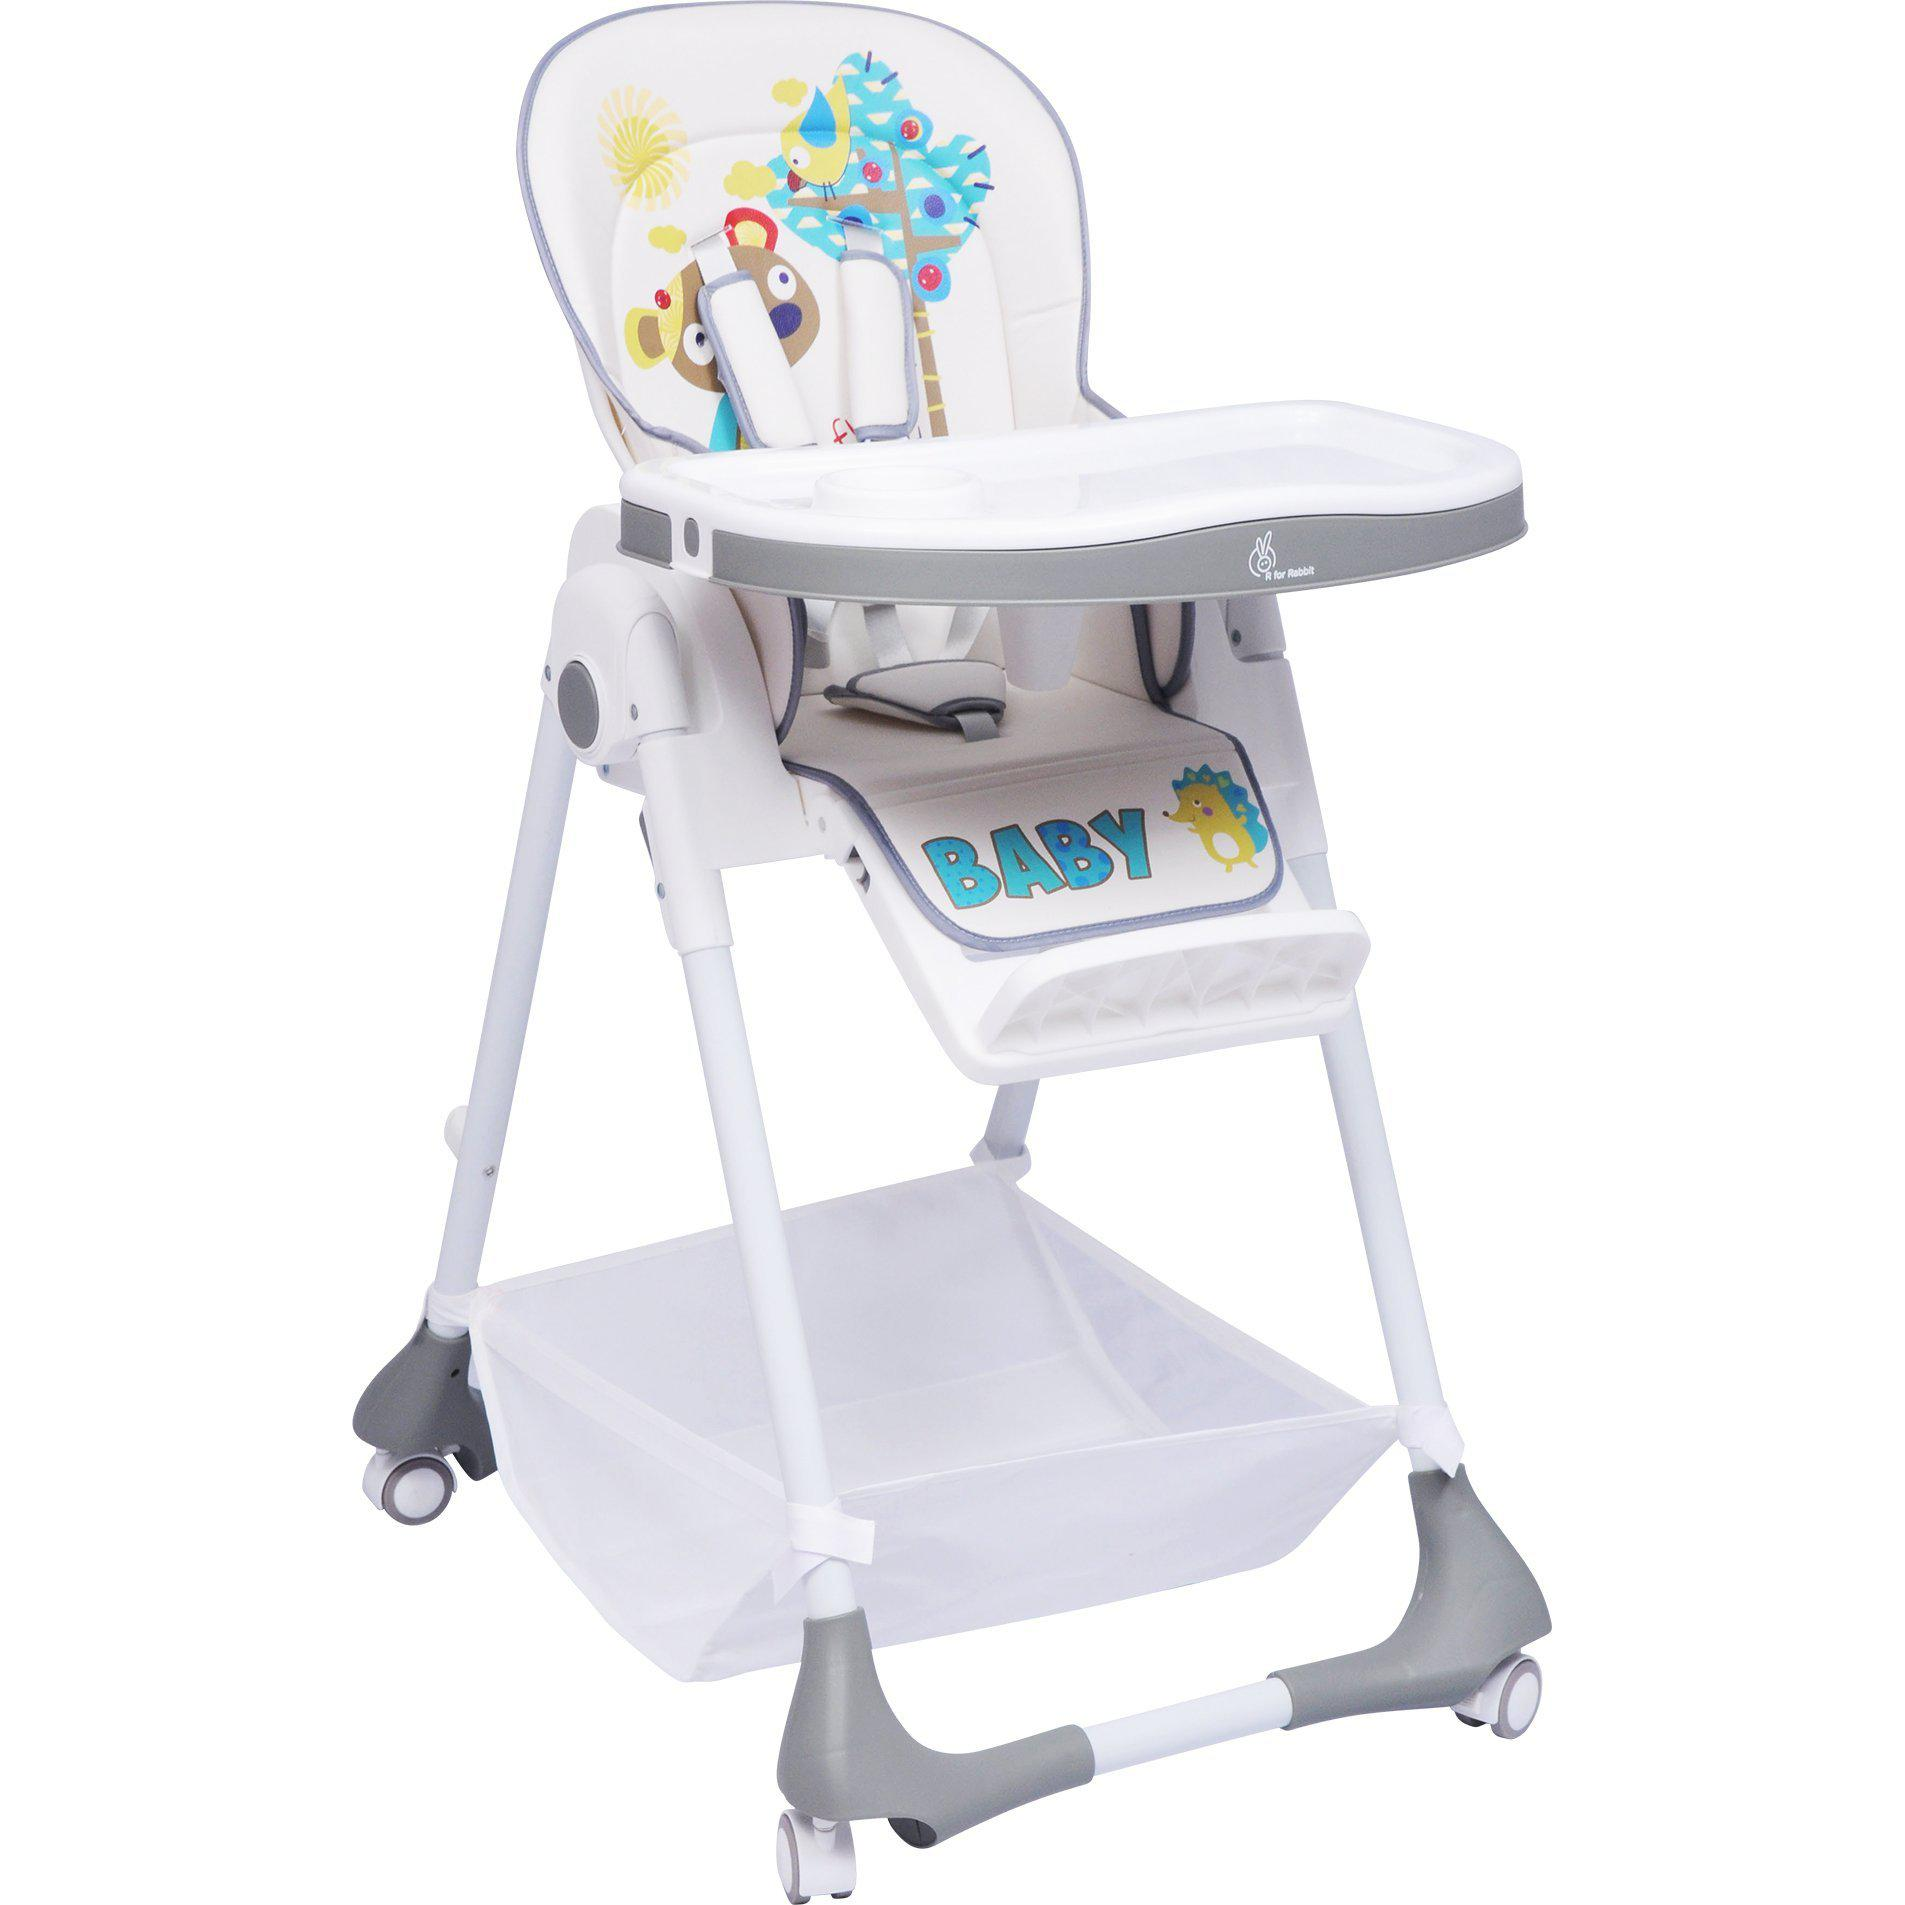 f4dbb6bf34f R for Rabbit Marshmallow - The Smart High Chair for Baby – R for Rabbit -  The Amazing Baby Company